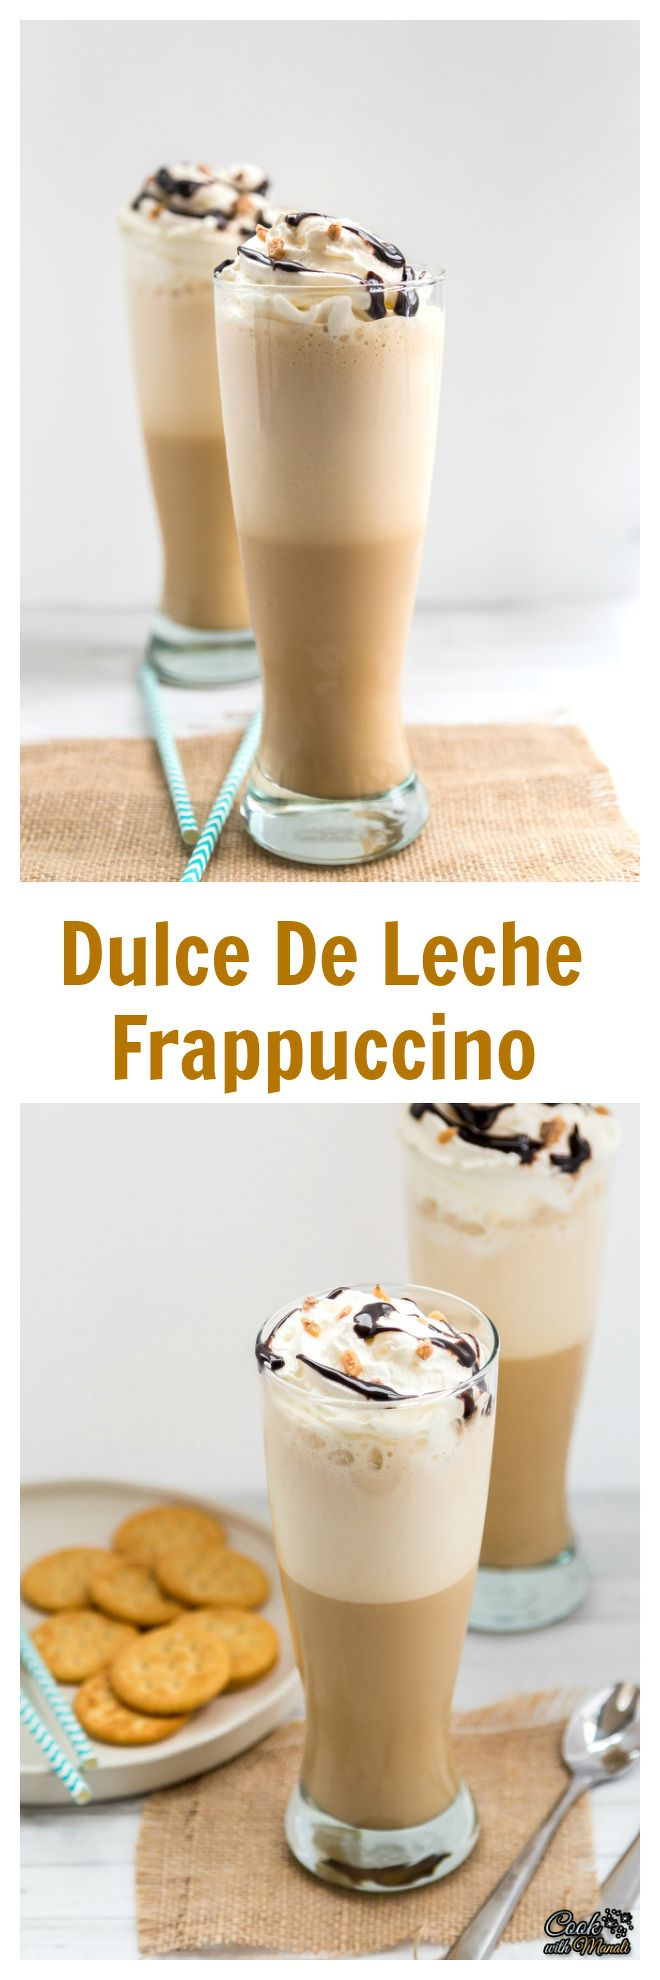 Dulce De Leche Frappuccino is a delicious treat to satisfy your coffee craving! ‪#‎McCafeMyWay‬ ‪#‎Ad‬